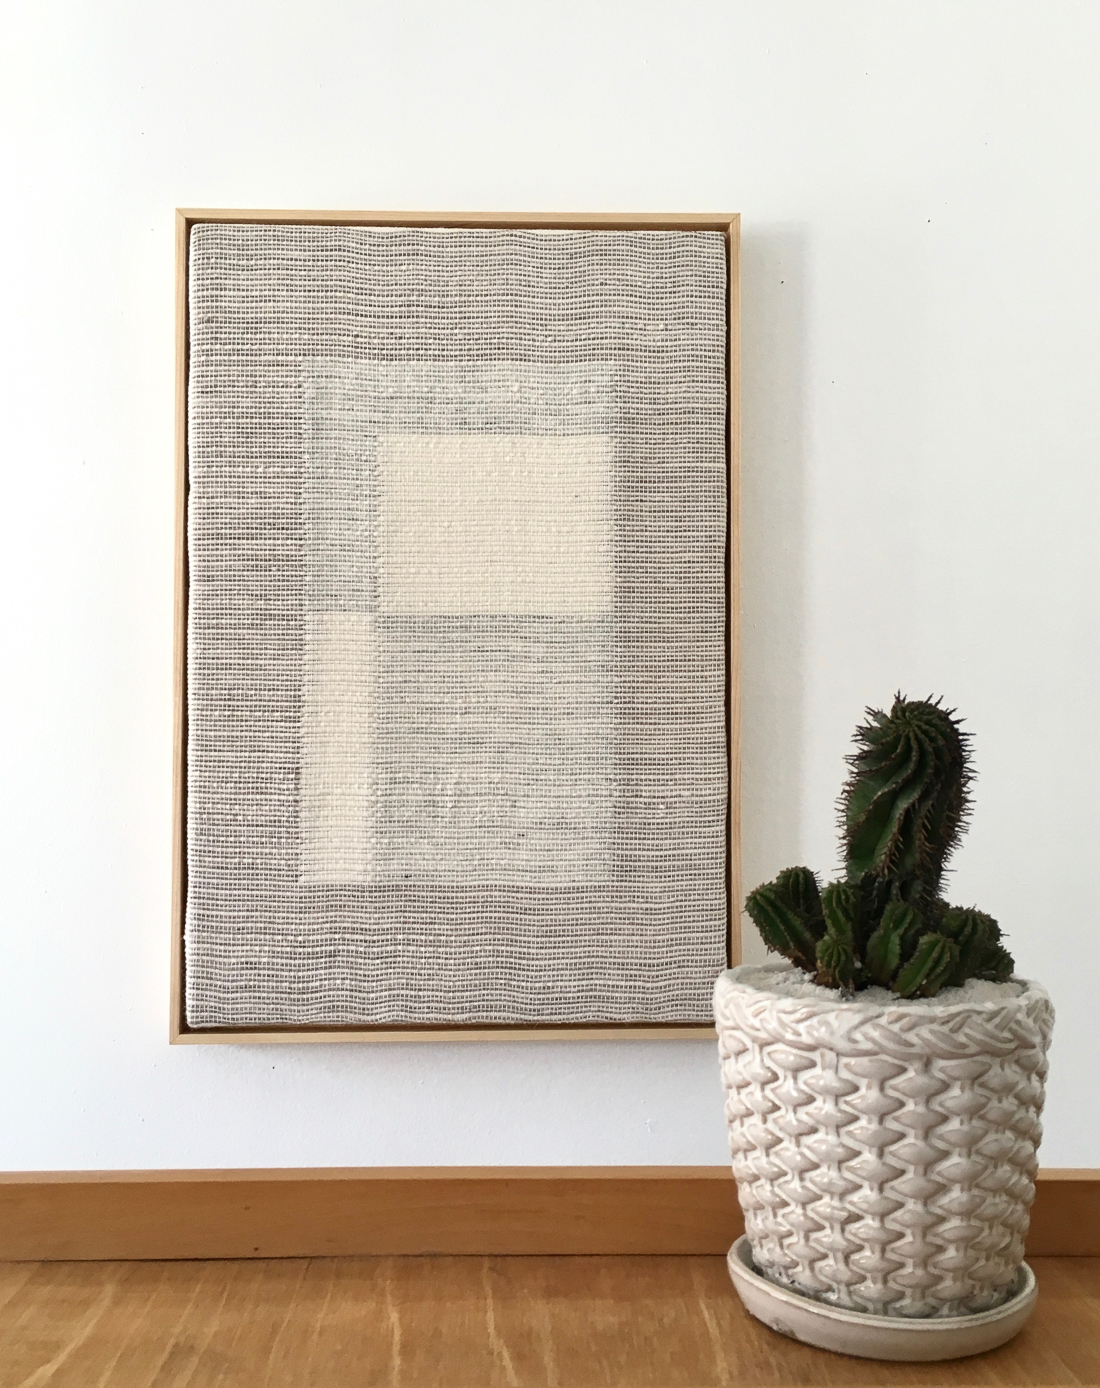 Handwoven Wall Art By Noelle Sharp